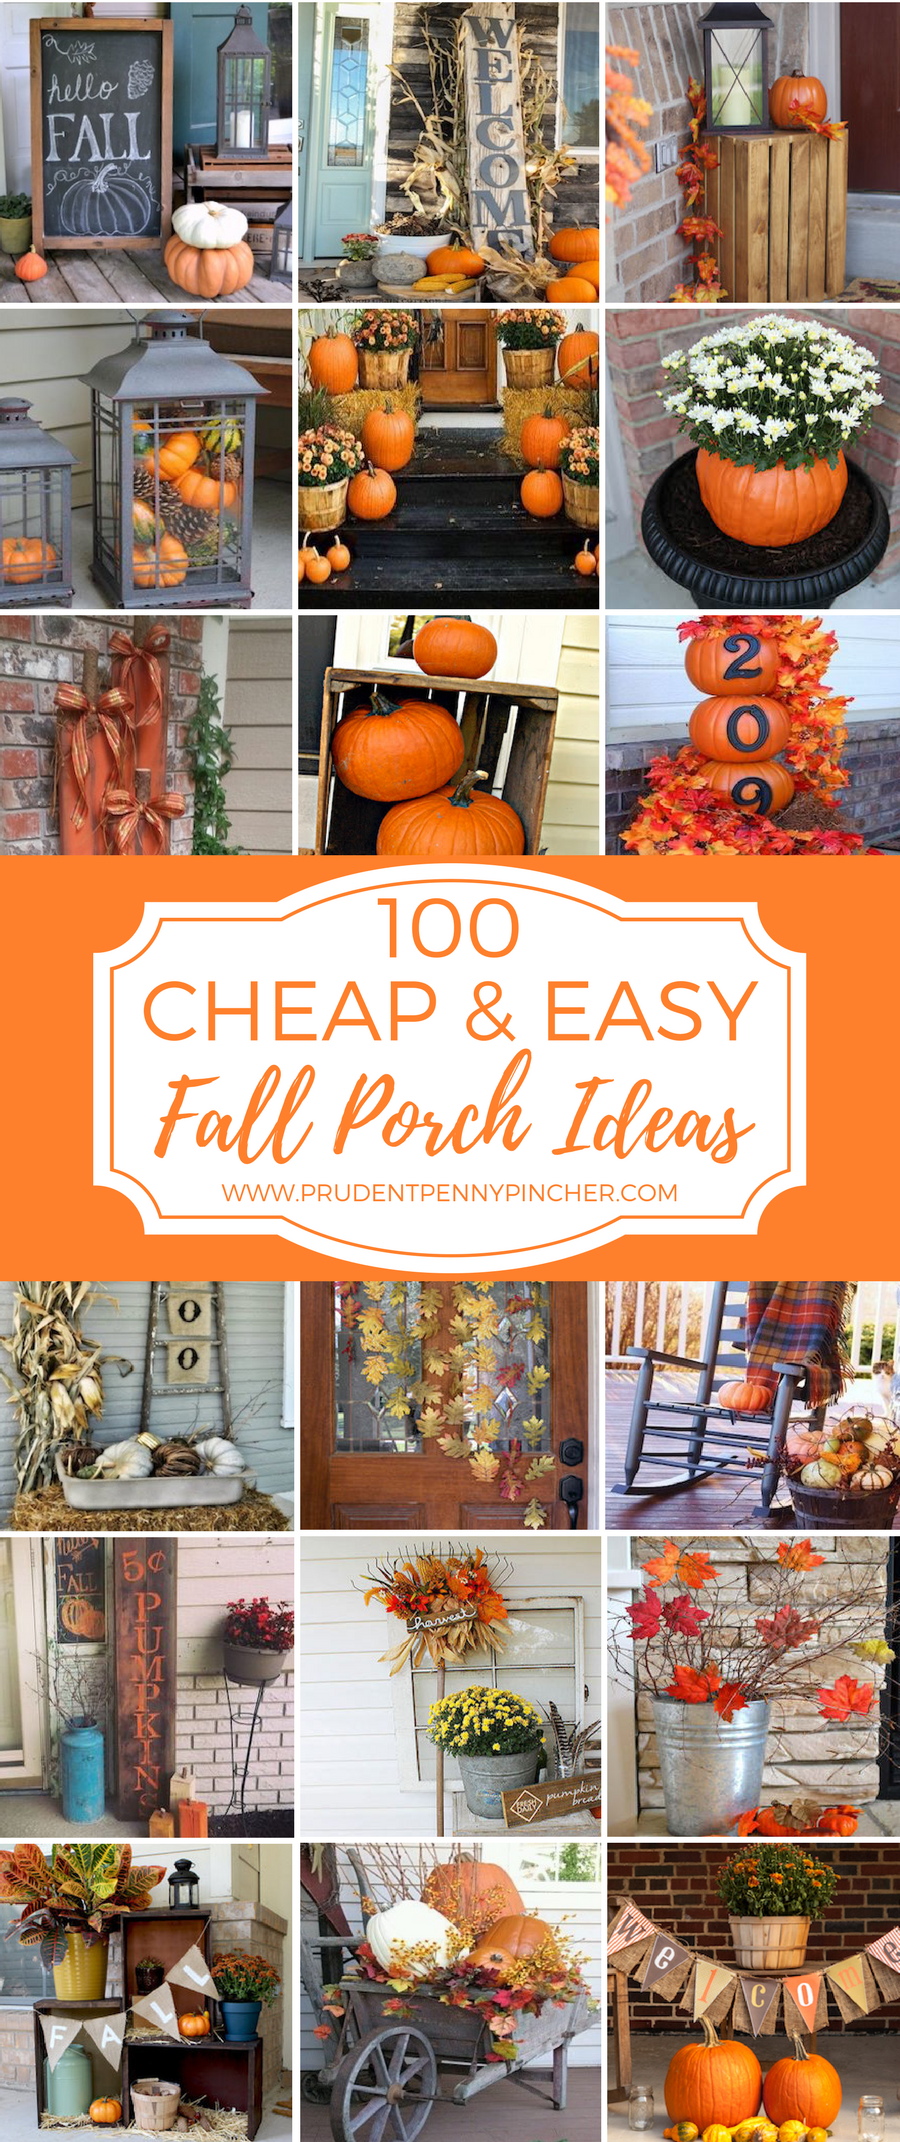 100 cheap and easy fall porch decor ideas prudent penny - How to get exterior paint out of clothes ...